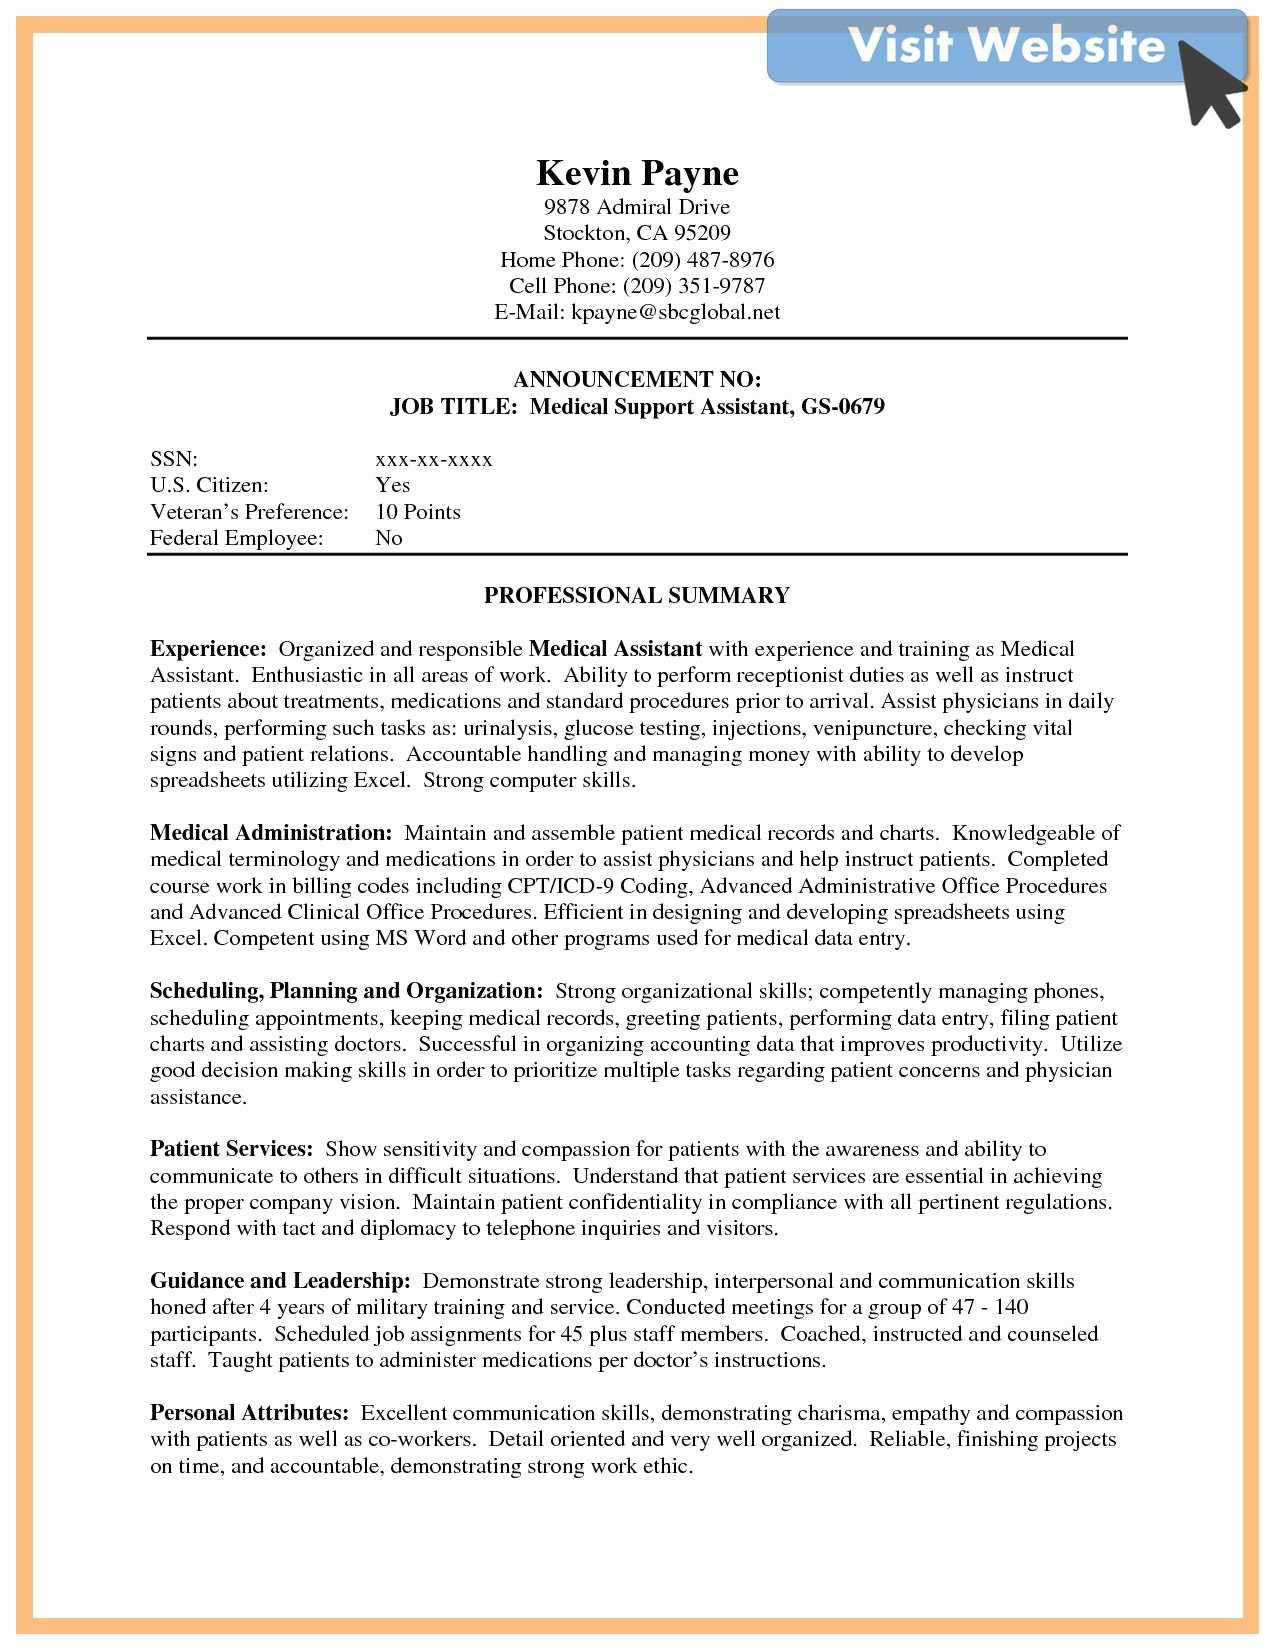 examples of an administrative assistant cover letter in medical resume template training Resume Training Assistant Resume Cover Letter